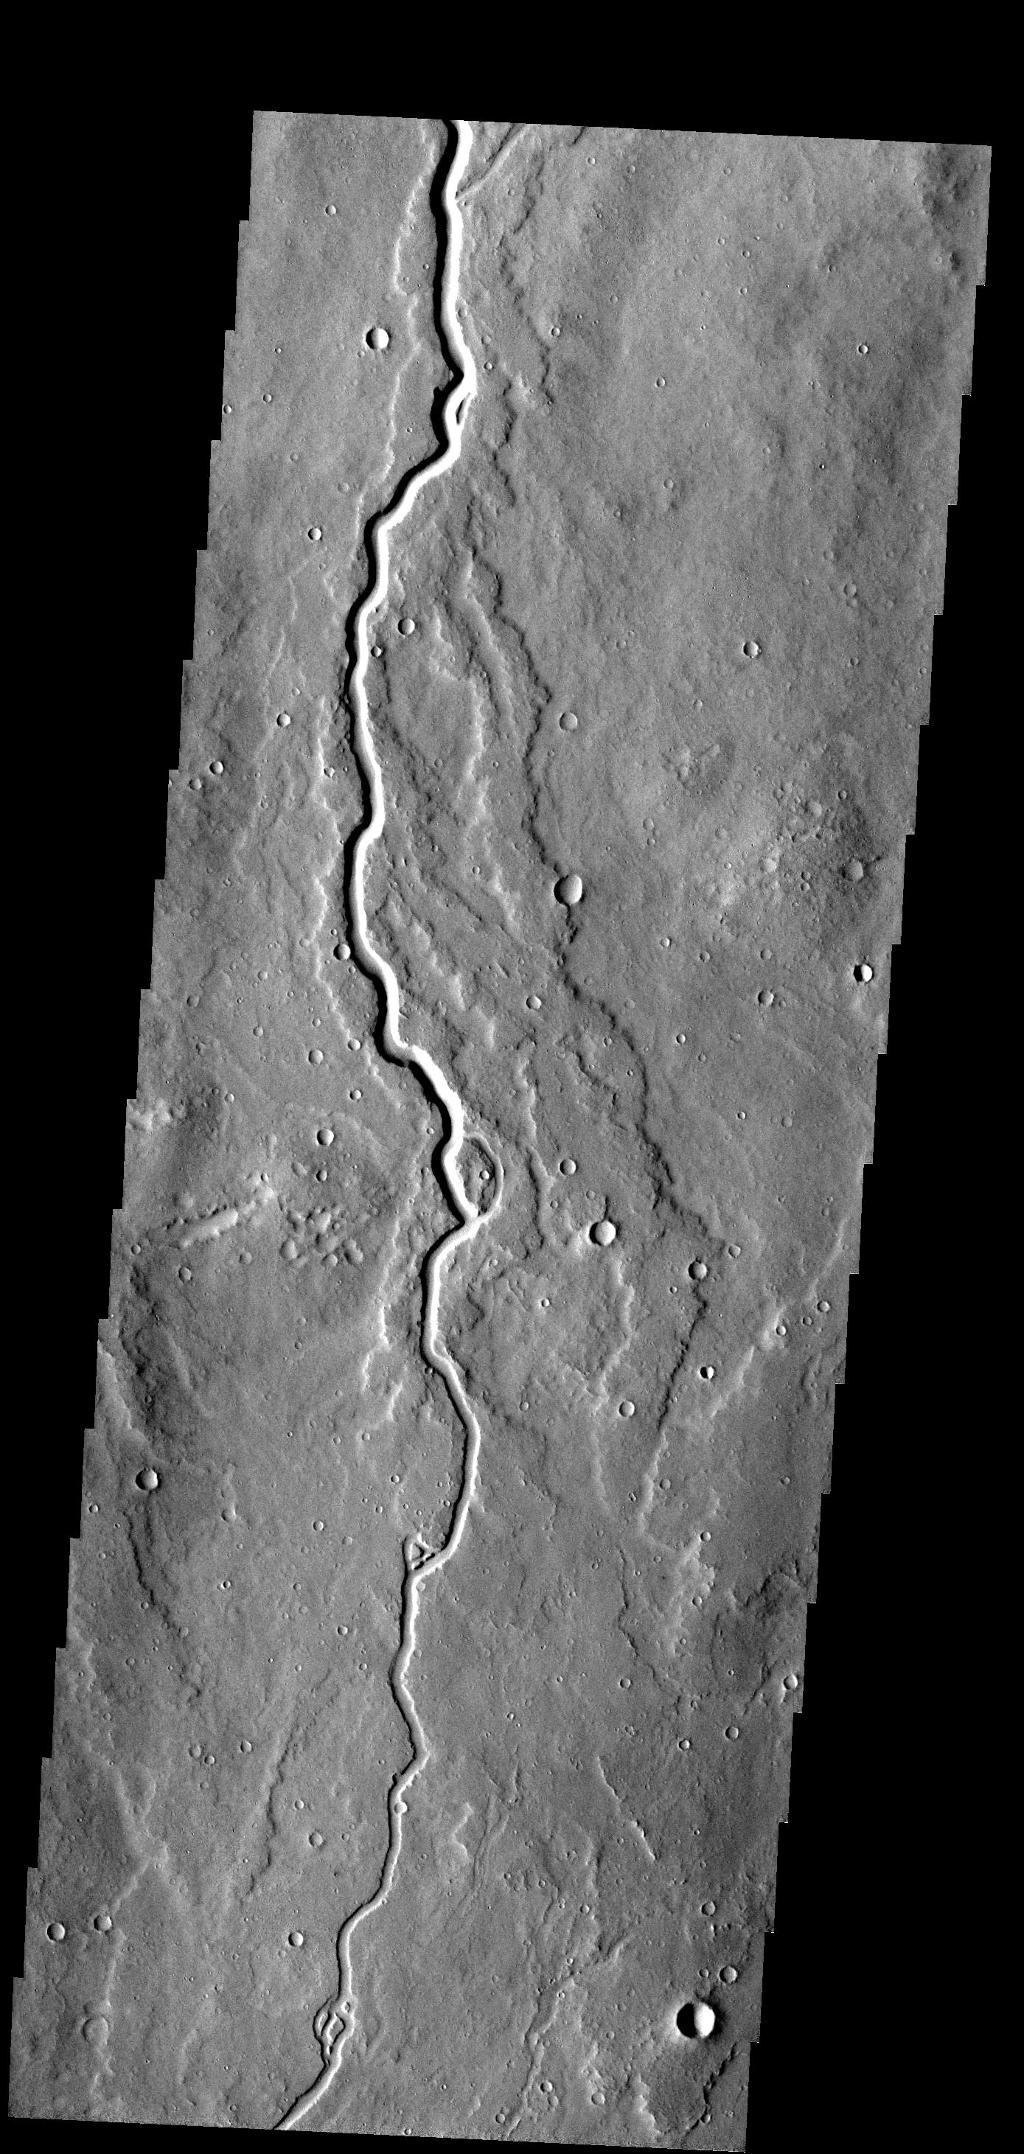 This lava channel is part of the Elysium Mons flows.